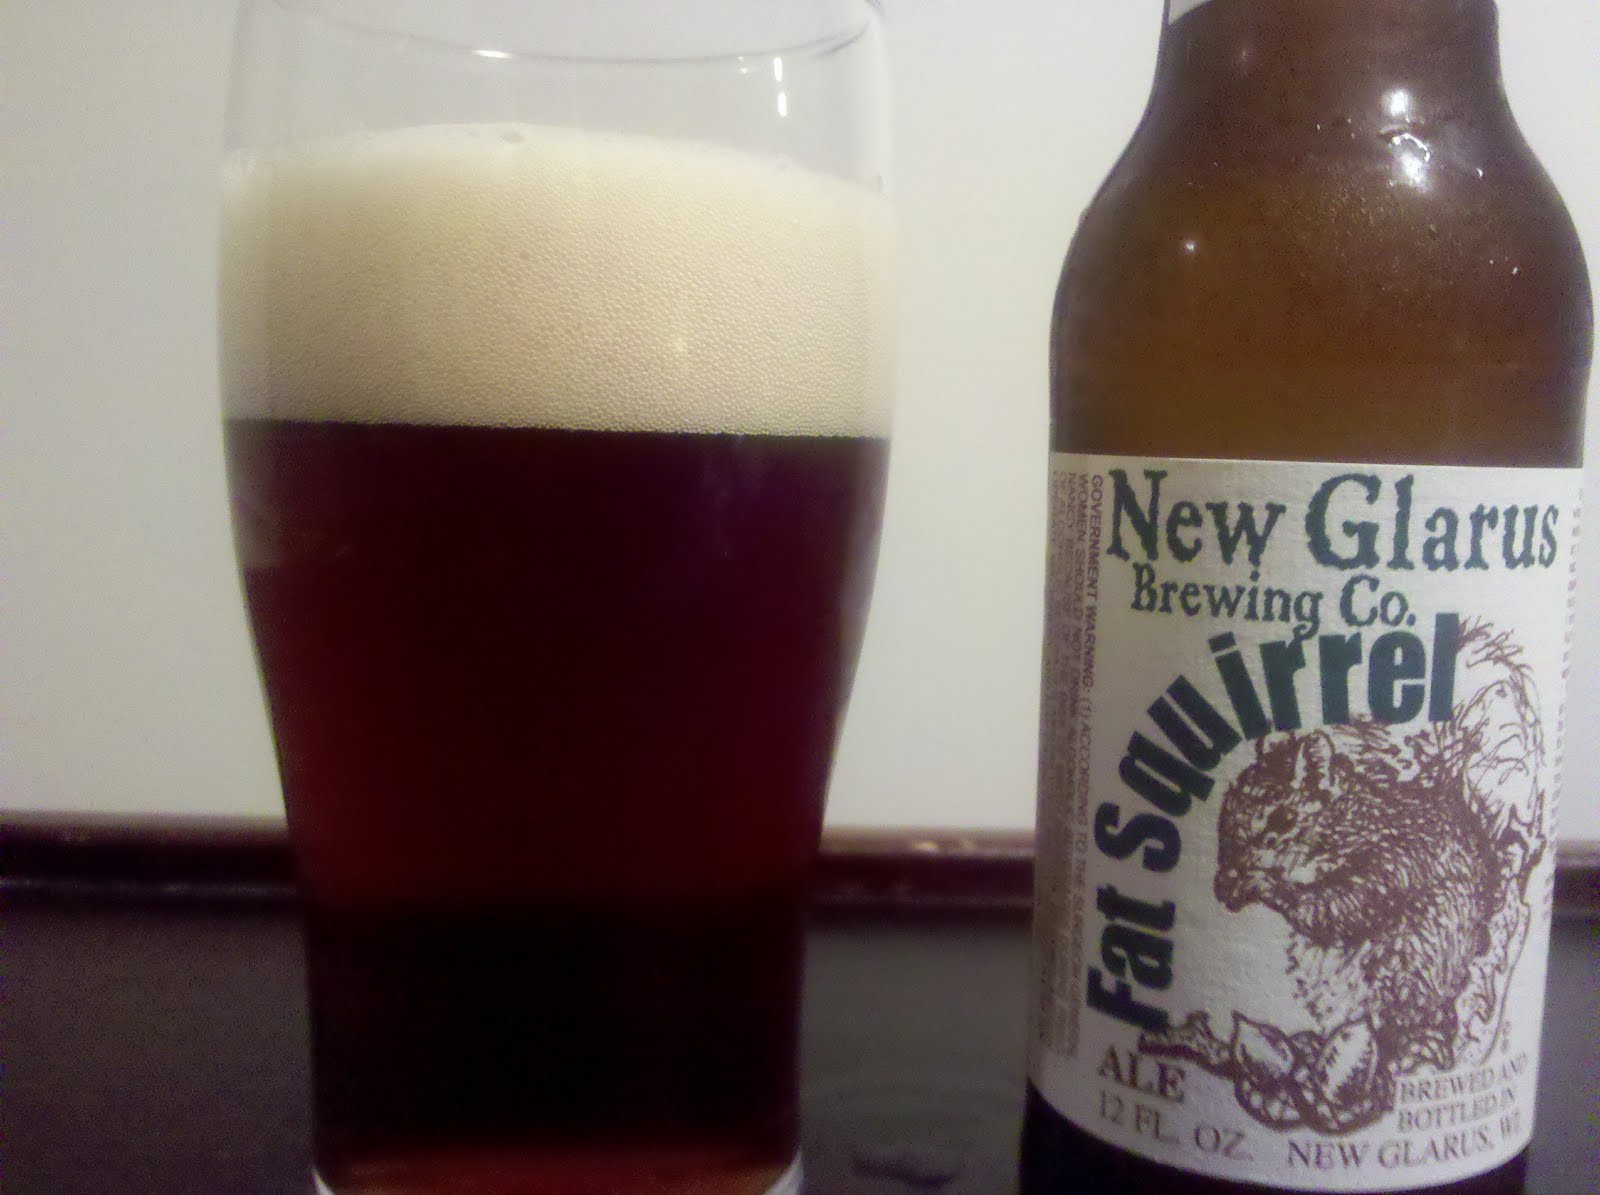 new glarus bbw personals Meet loads of available single women in new glarus with mingle2's new glarus dating new glarus bbw | new glarus singles honest and hoping to experience new.